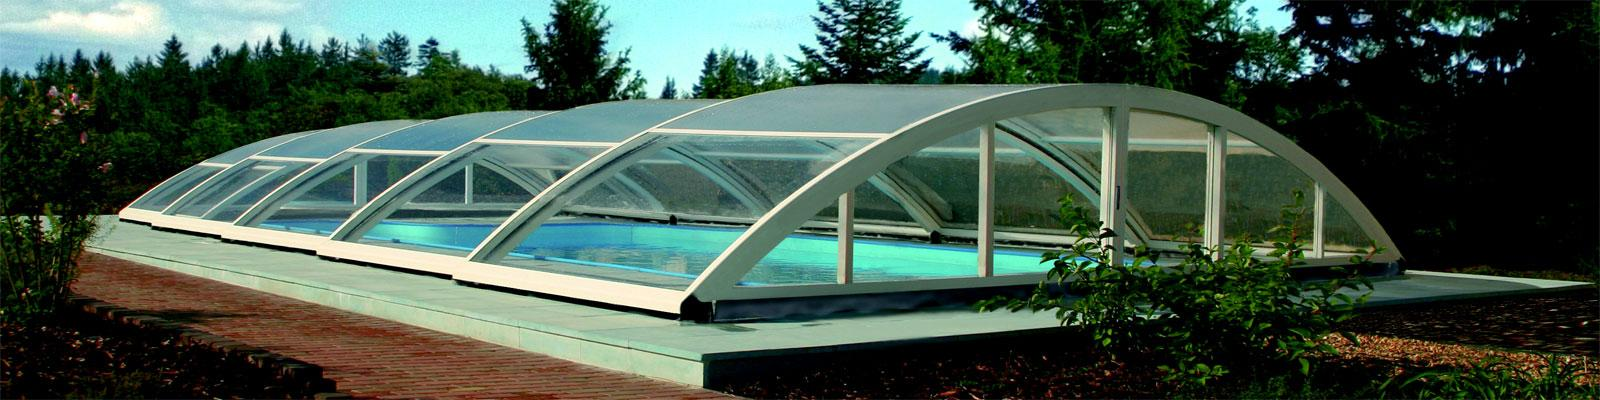 Poolcover-polycarbonate1